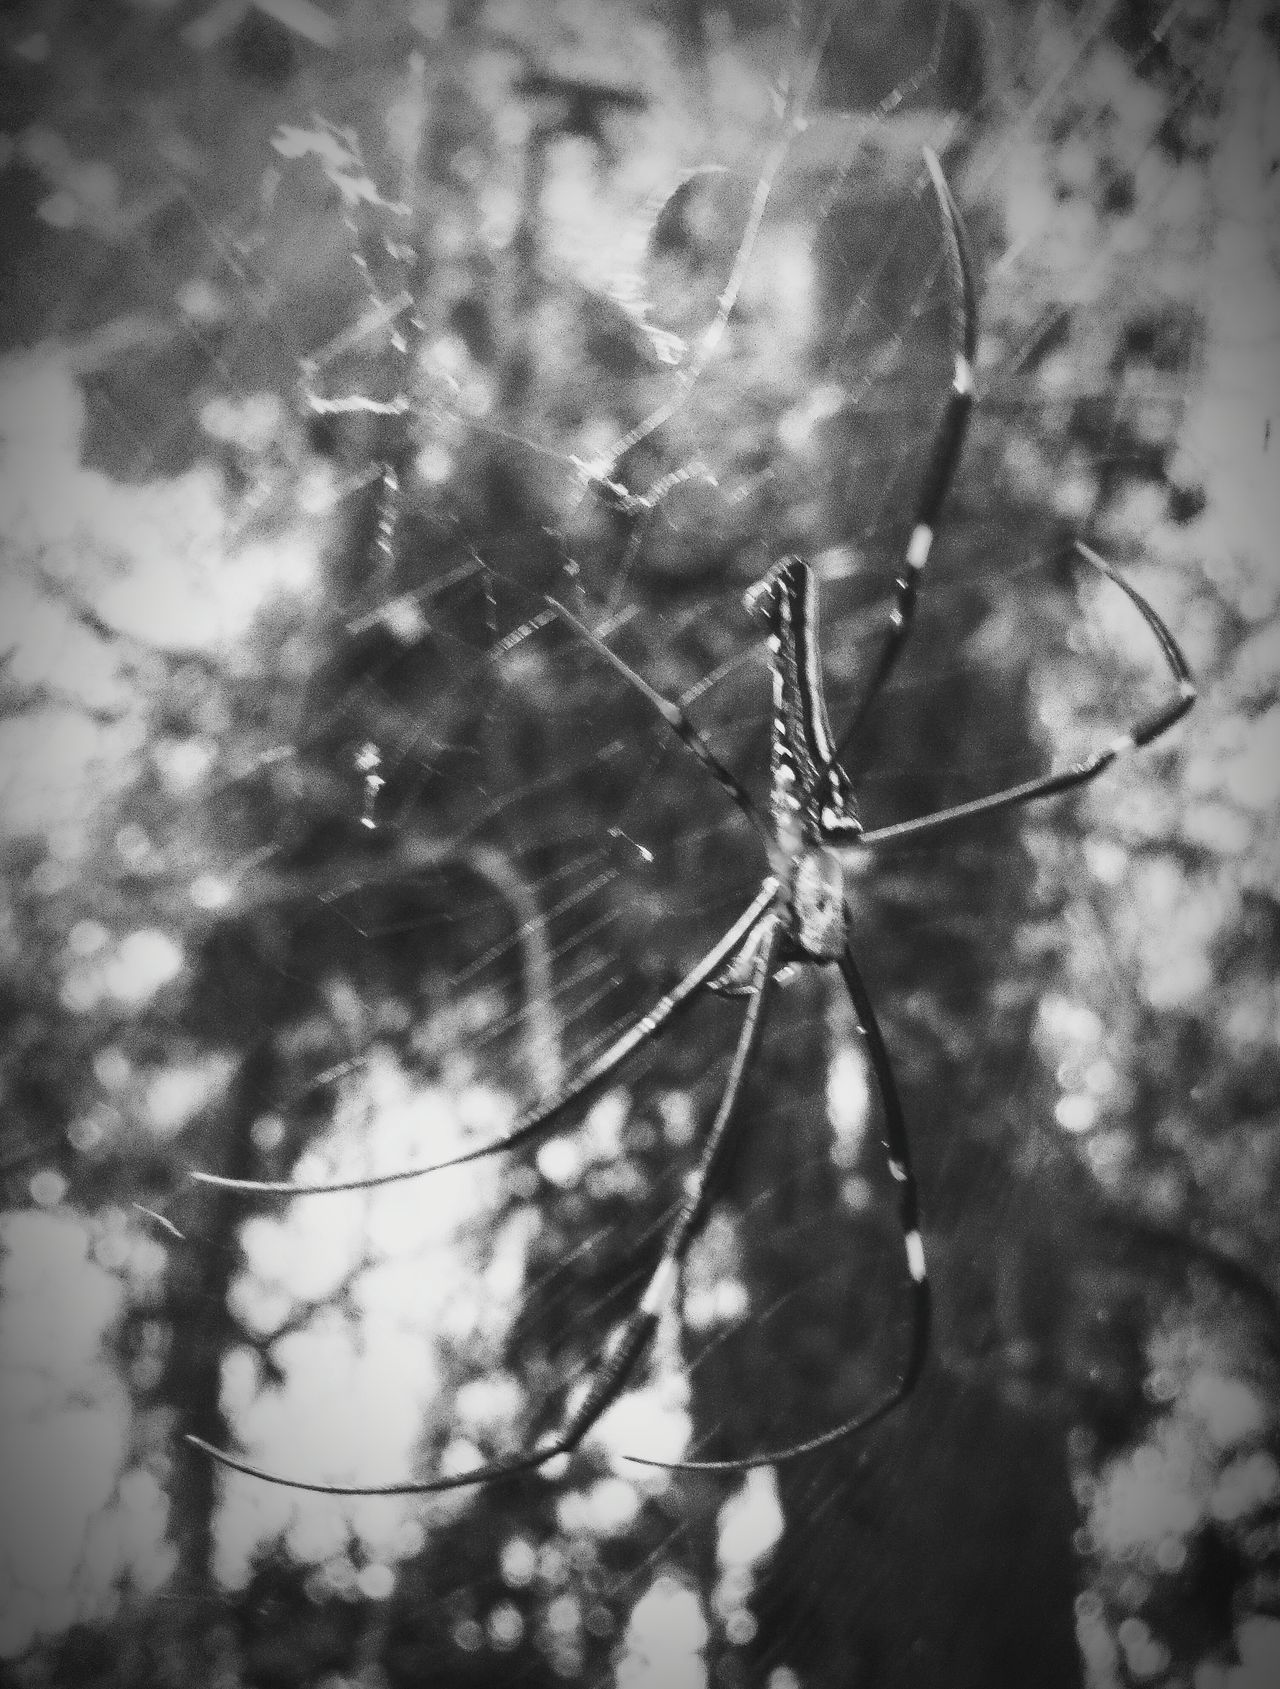 As big as my entire hand 😨 Huge Spider Jungle Trekking Khaoyainationalpark Thailand Arachnid Big Spider In The Jungle Spider Bnw Nature Jungle Spider Arachnid Photography Spider Photography Scary Spider Giant Spider Arachnophobia Watch Out! Dont Touch Don't Touch Don't Get Too Close. Khaoyai Khao Yai EyeEm Thailand Thailandtravel Fujifilm Finepix Xp60